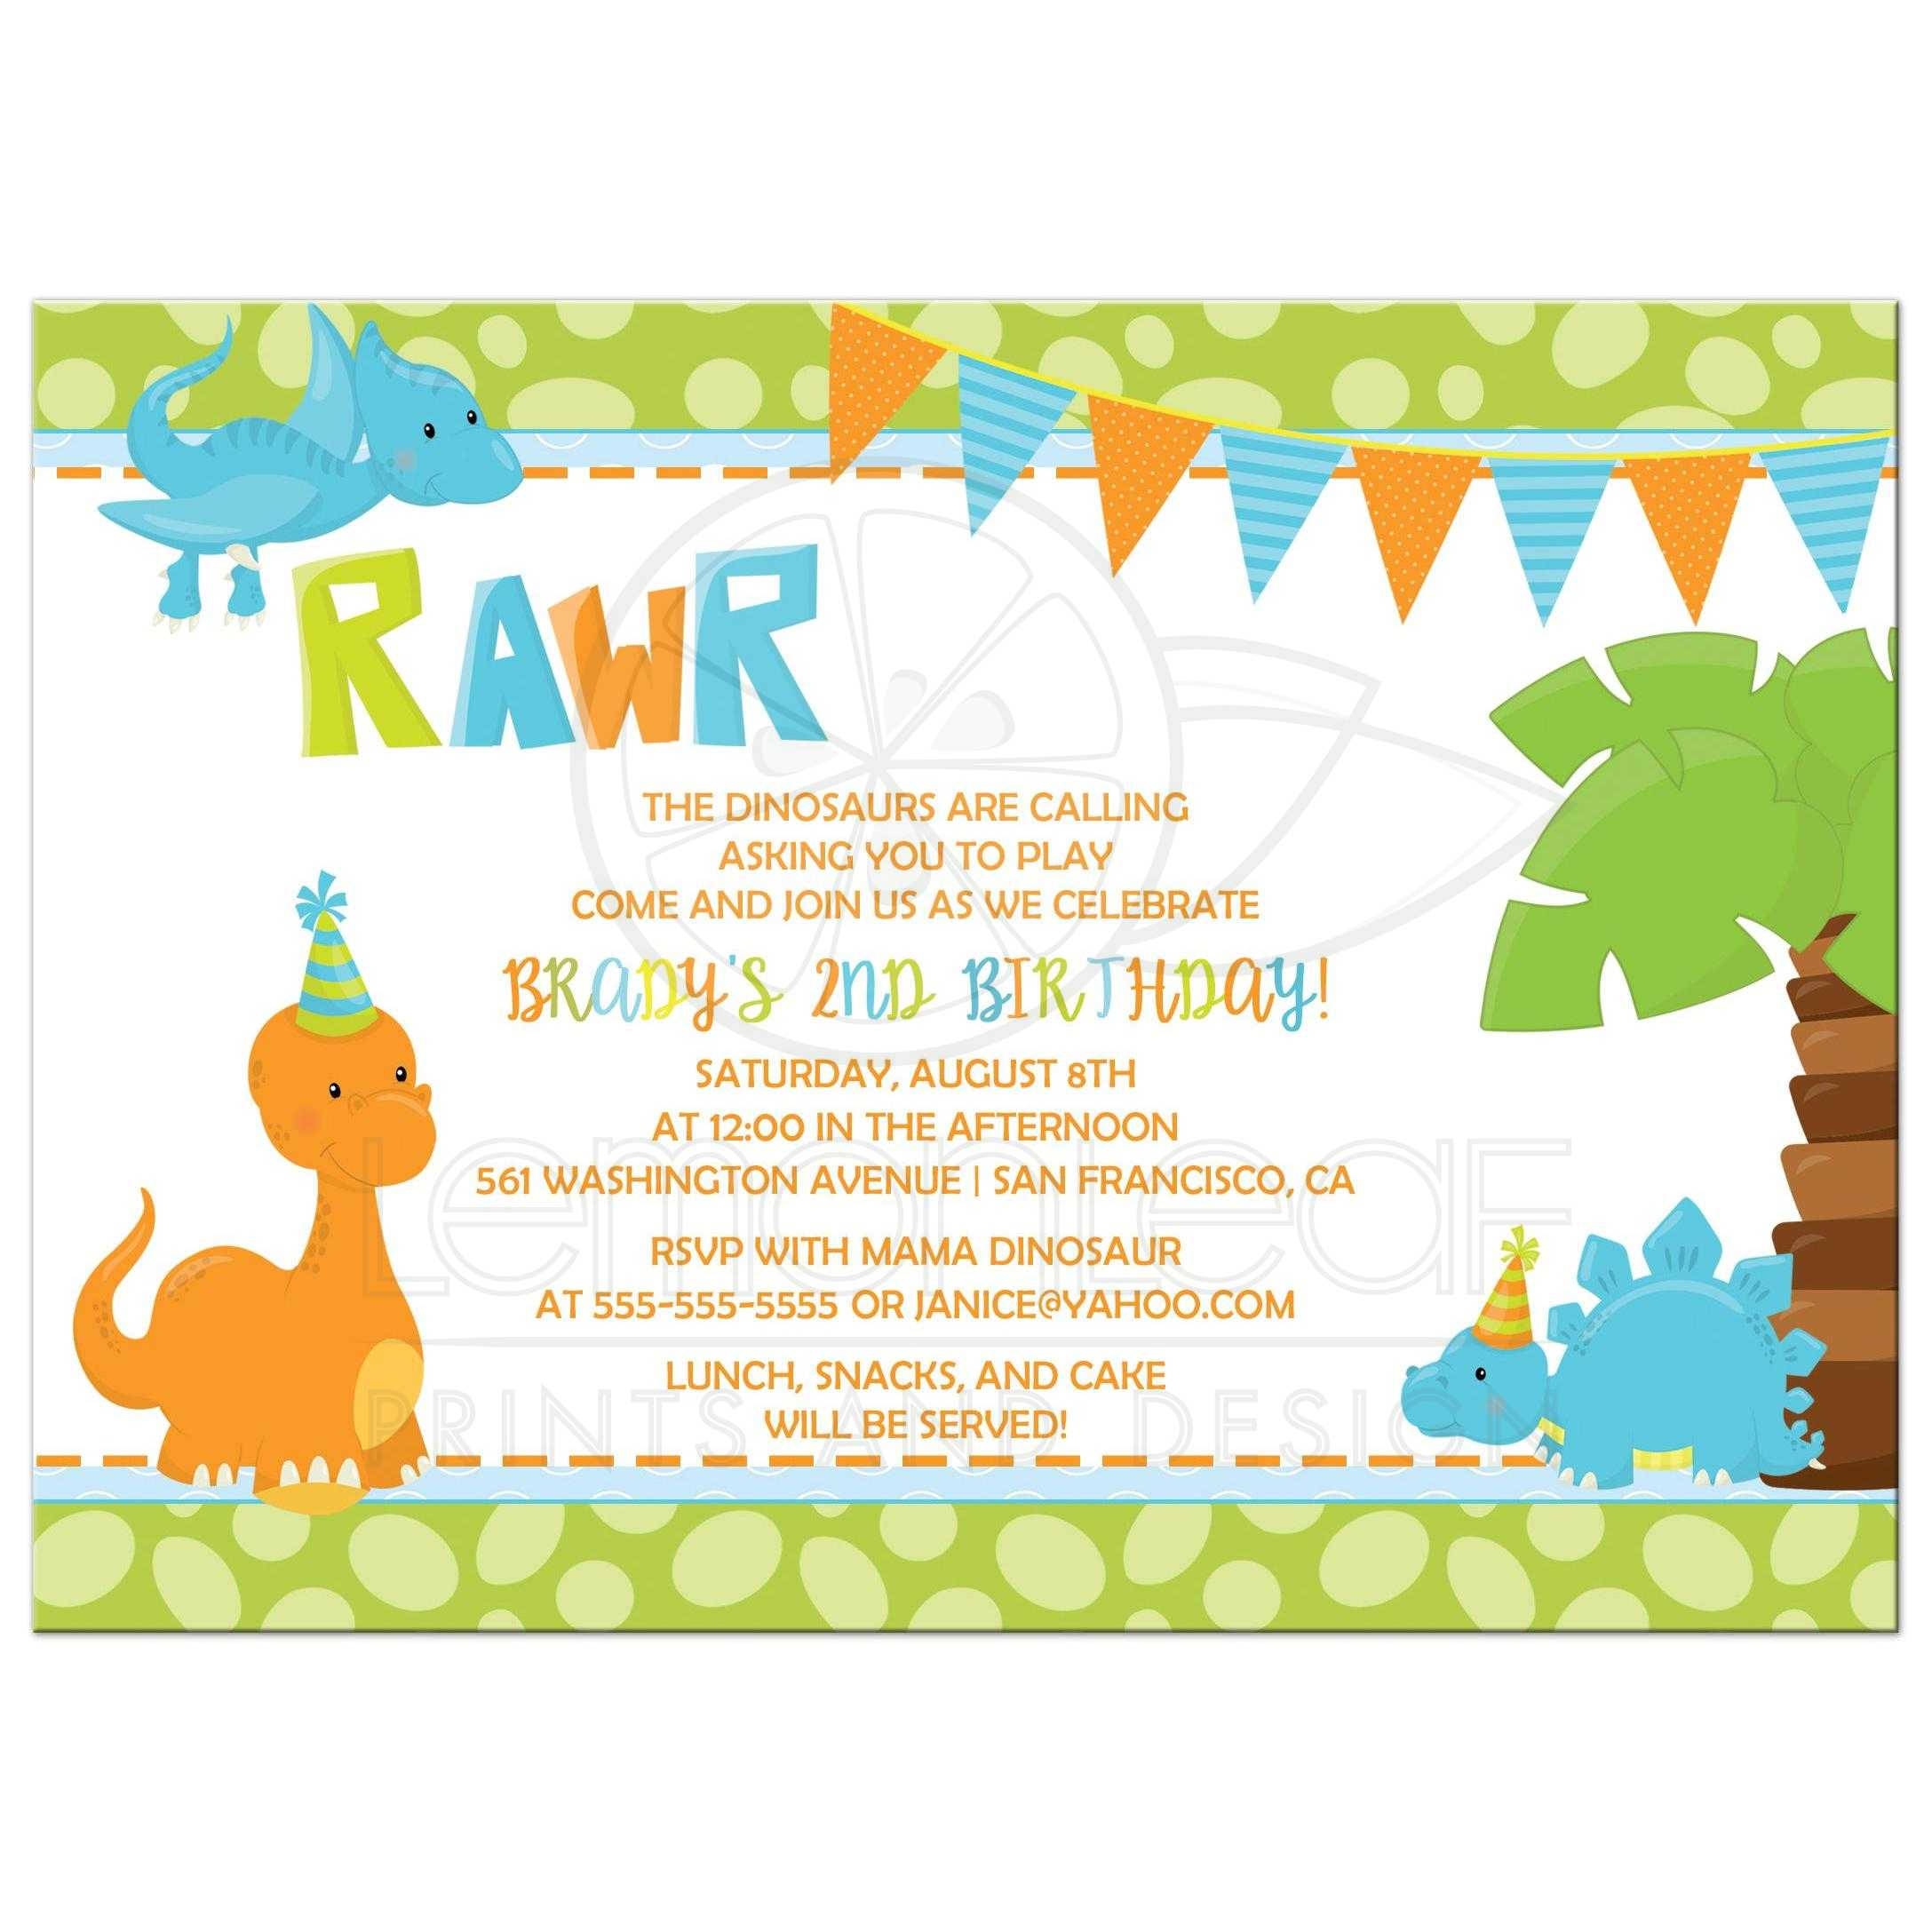 Birthday party invitation boy dinosaur in orange blue and green boys dinosaur birthday party invitations filmwisefo Image collections